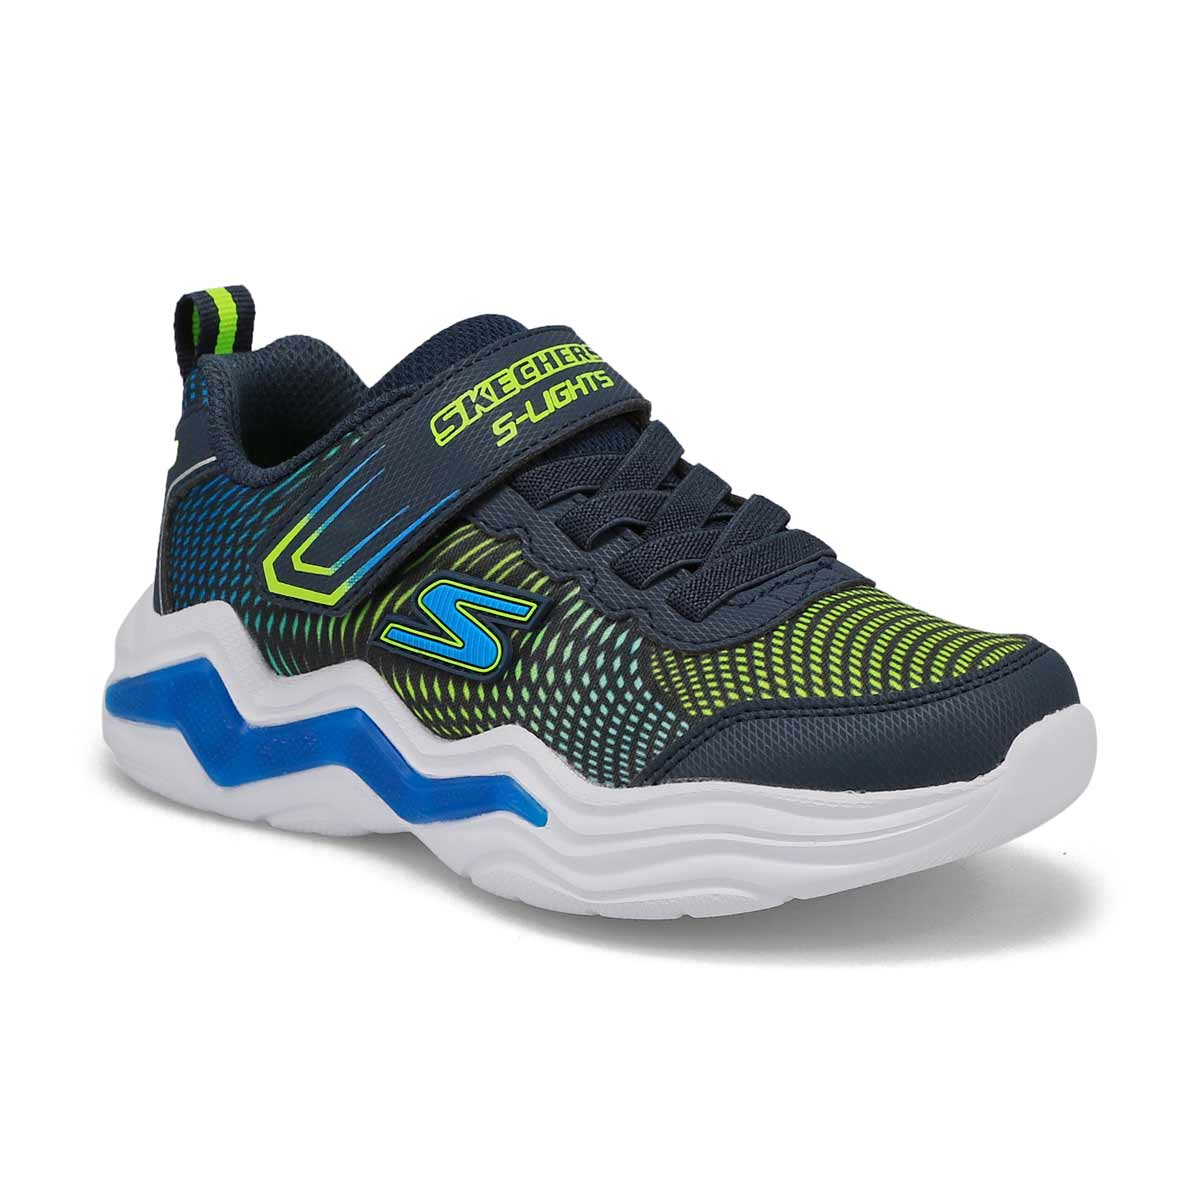 Boys' Erupters IV Sneakers - Navy/Lime